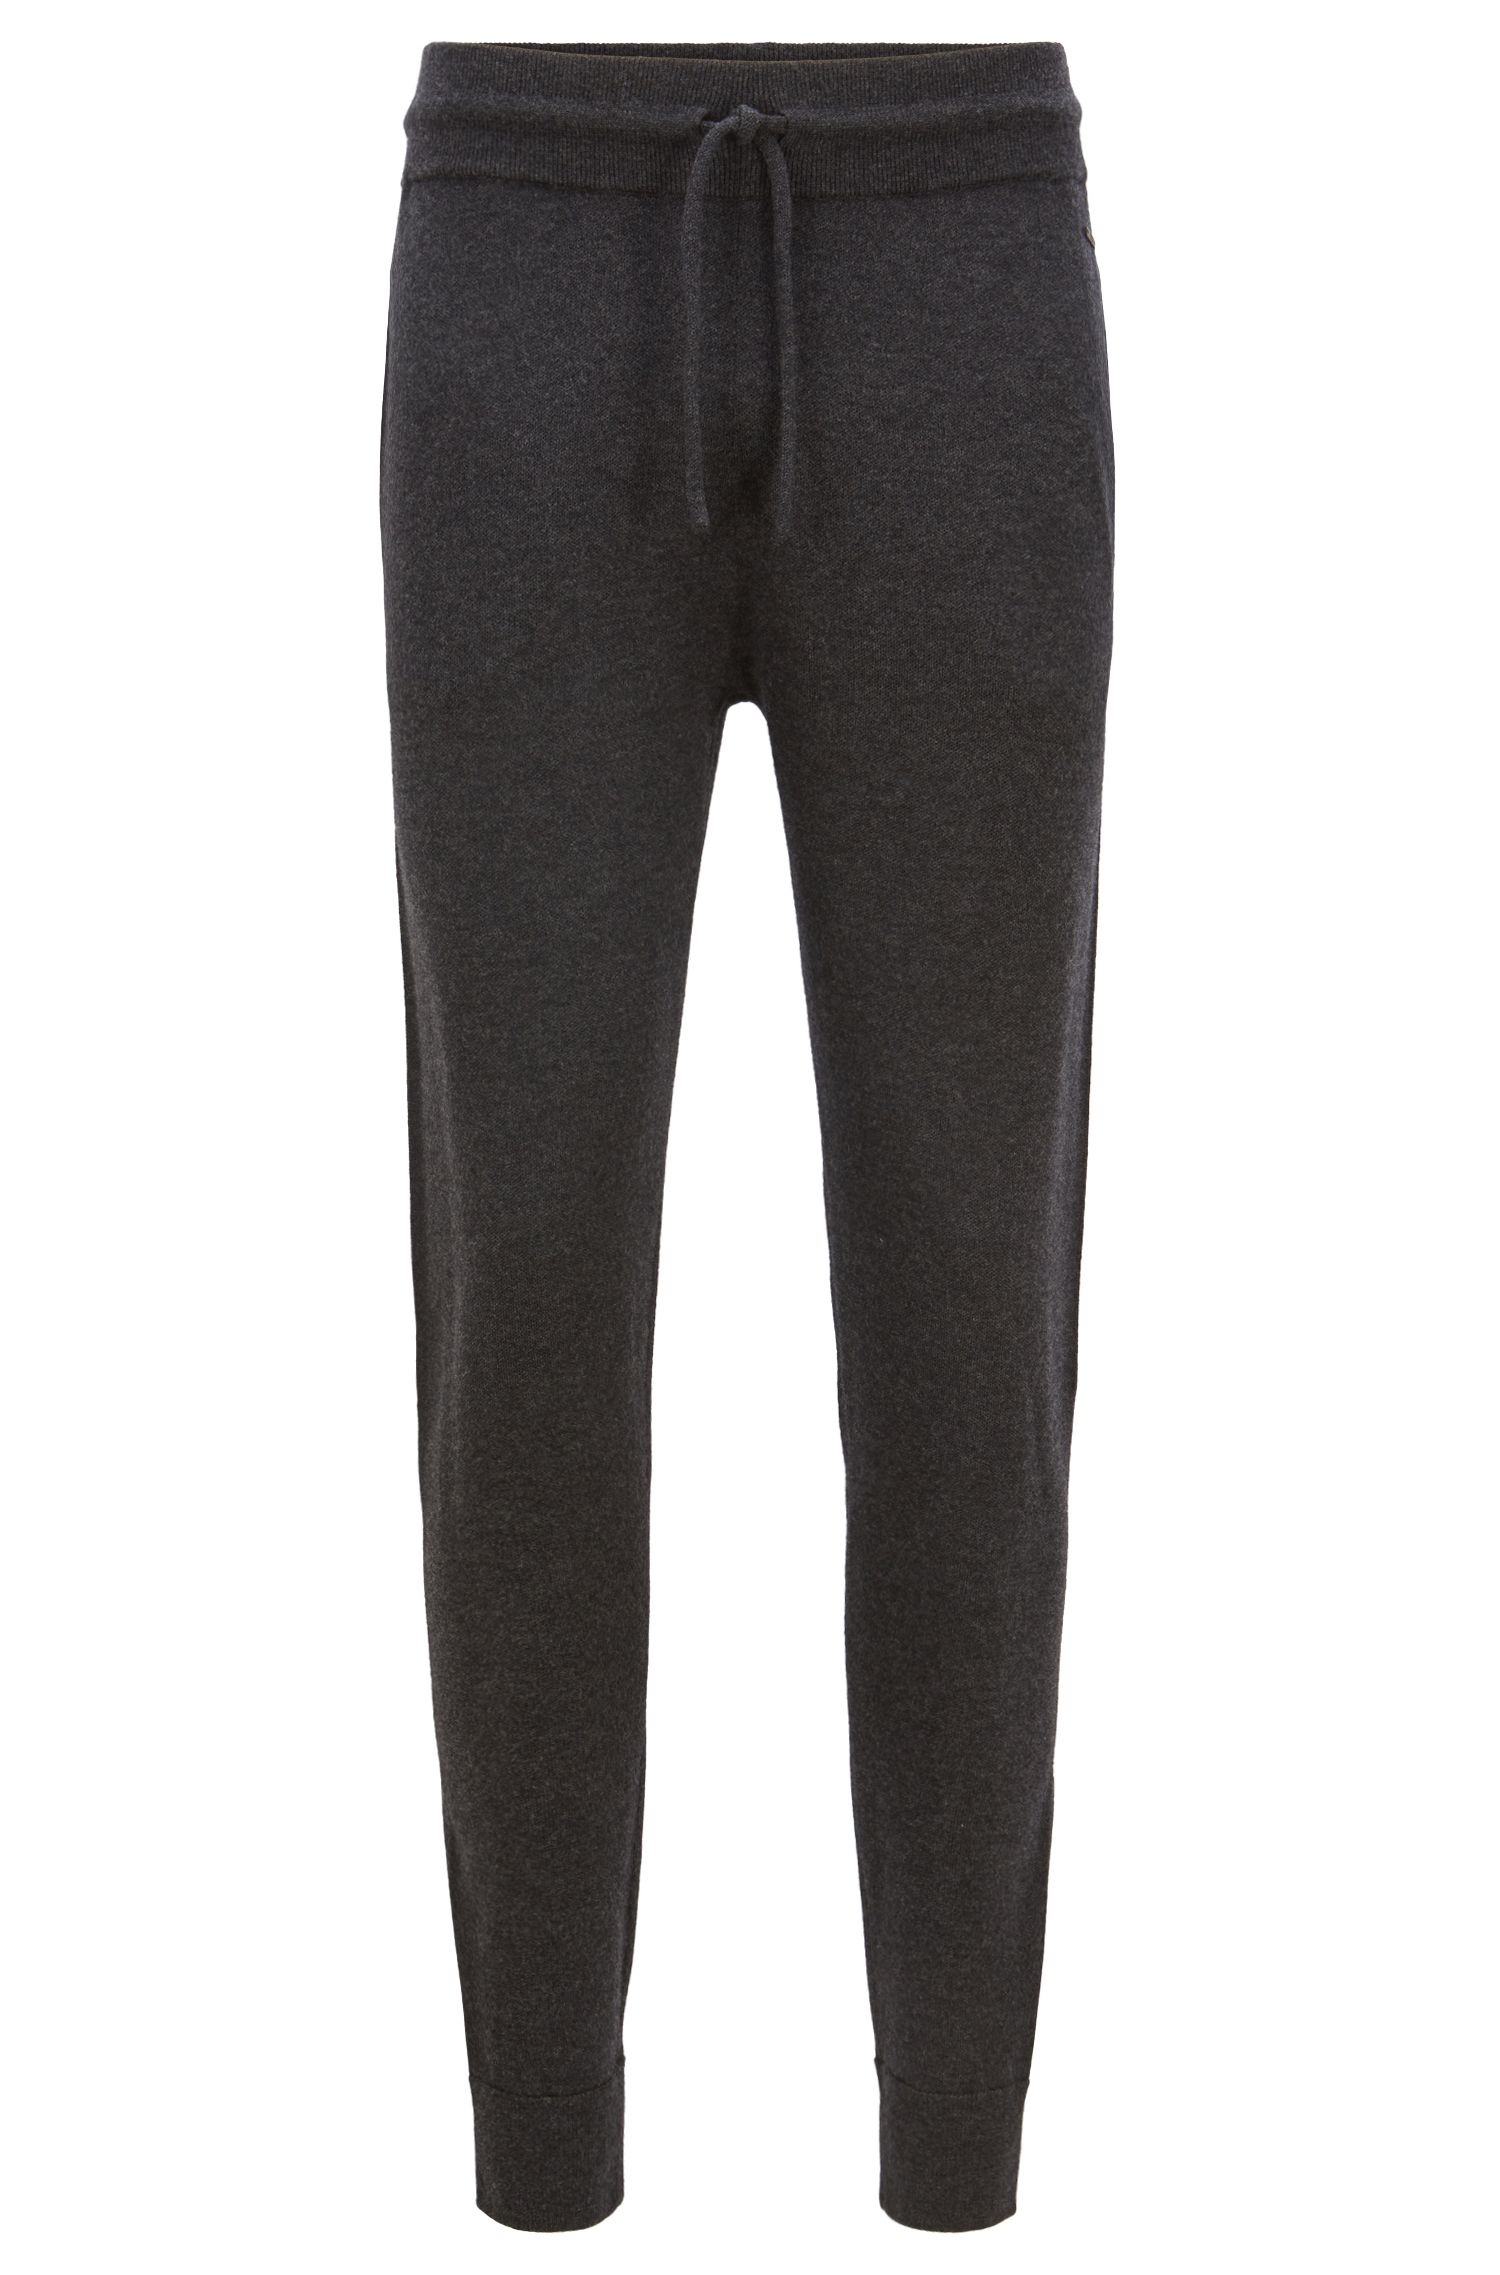 Cuffed trousers in a virgin-wool blend with side stripe